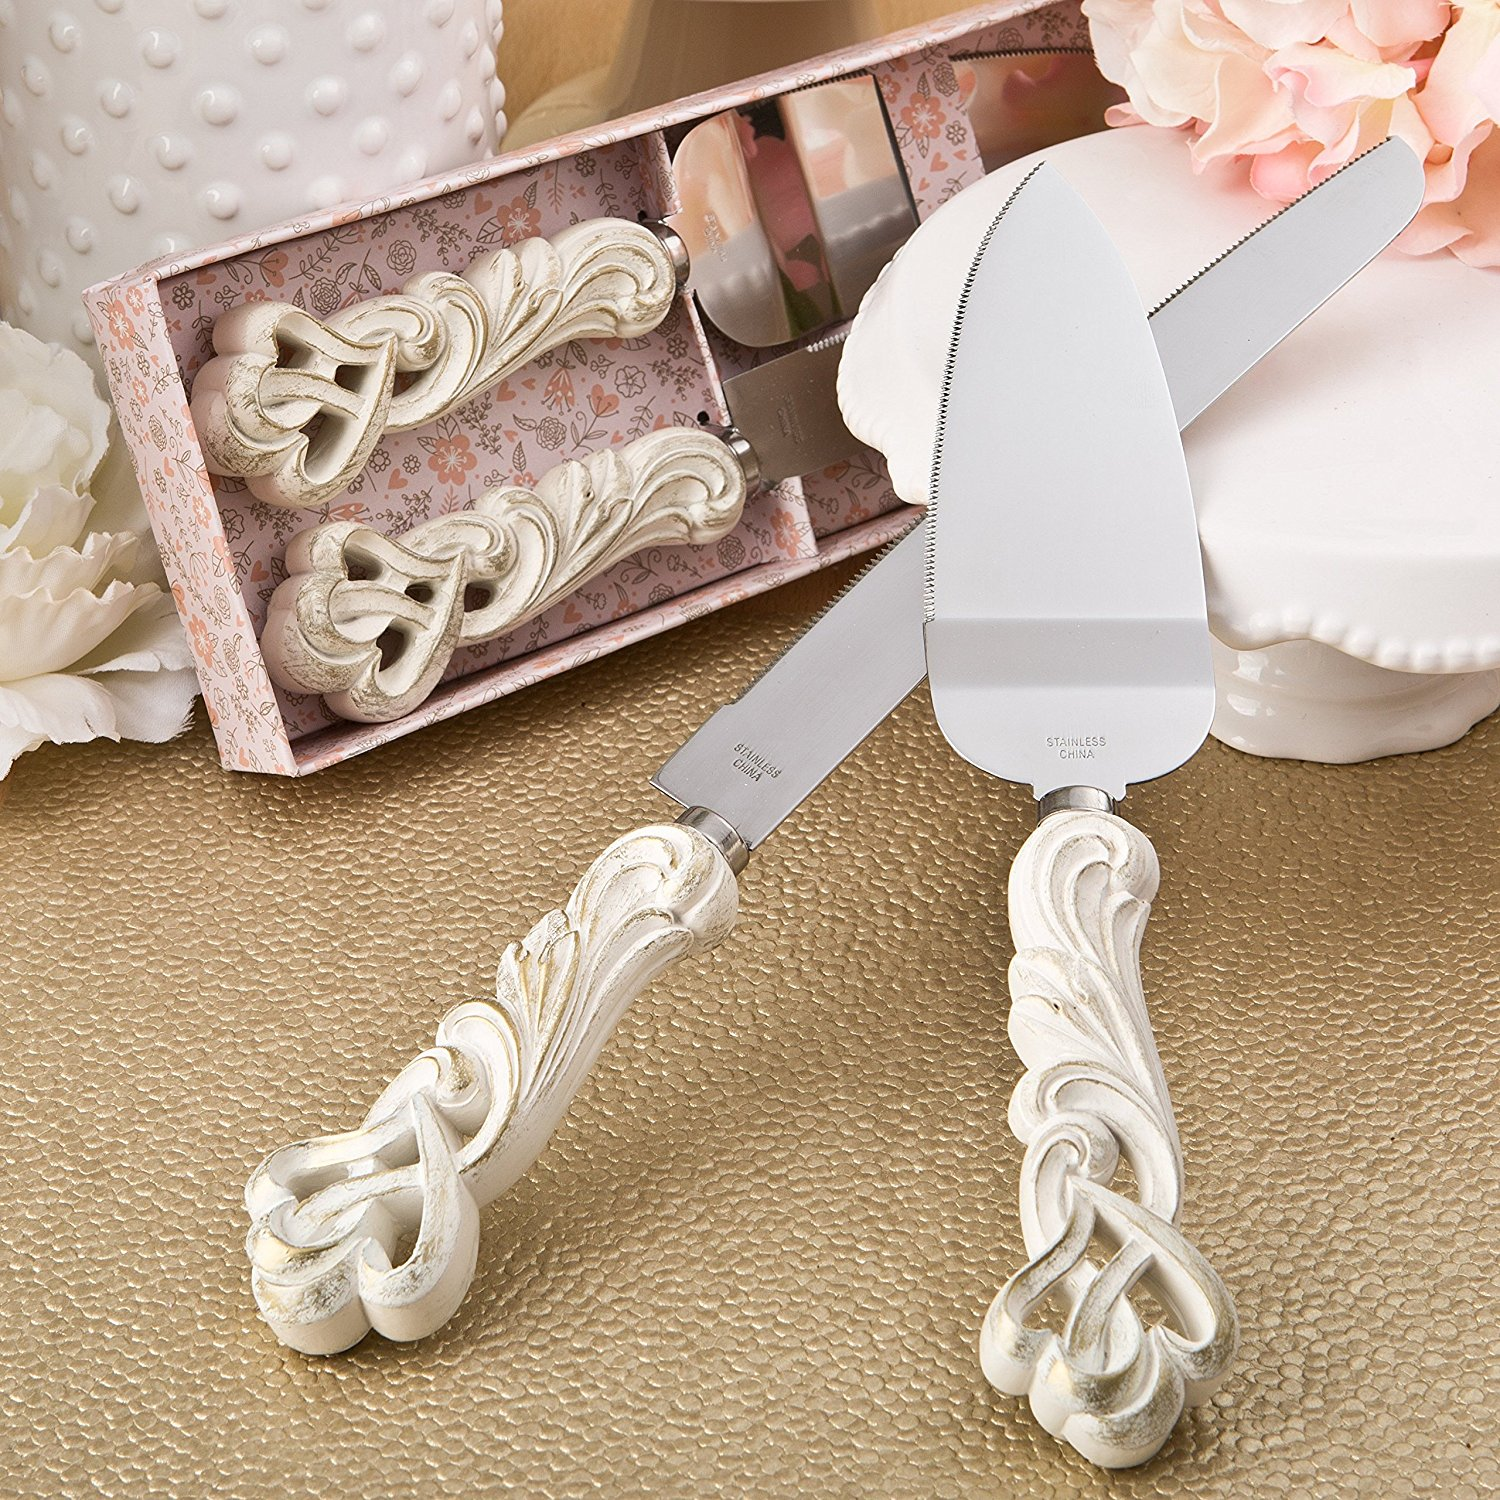 Fashioncraft Vintage Double Heart Design Knife And Cake Server Set